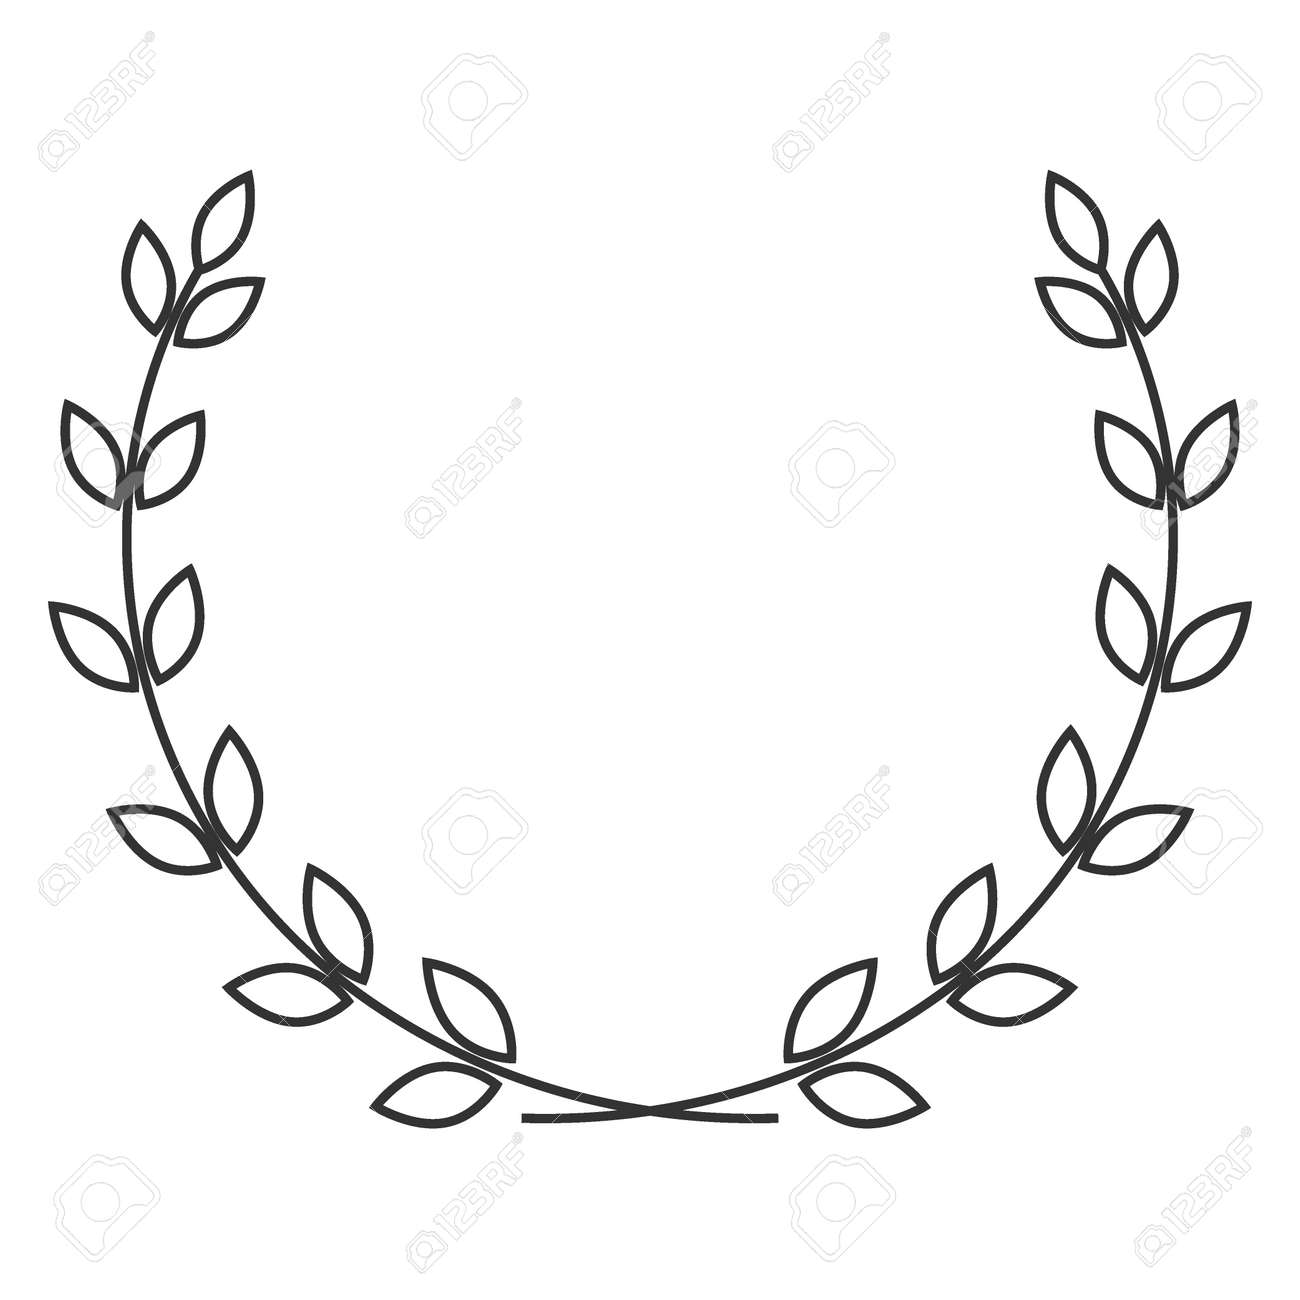 A laurel wreath symbol of victory and achievement design a laurel wreath symbol of victory and achievement design element for construction of medals buycottarizona Image collections